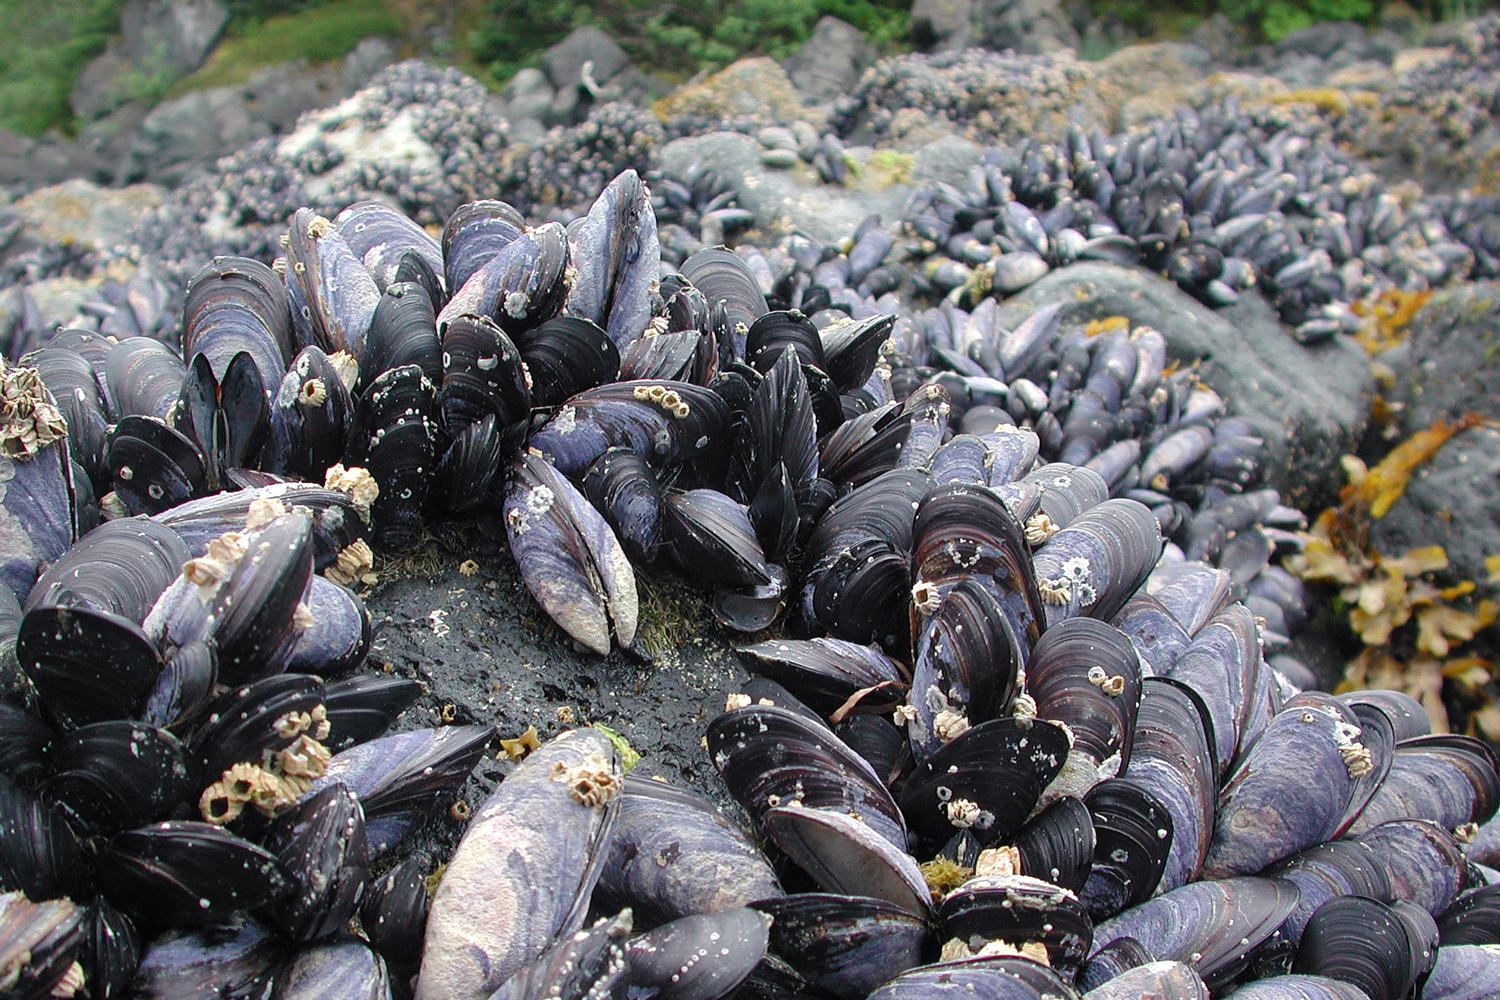 Photo of a cluster of elongated gray-and-white mussels on shoreline rocks.